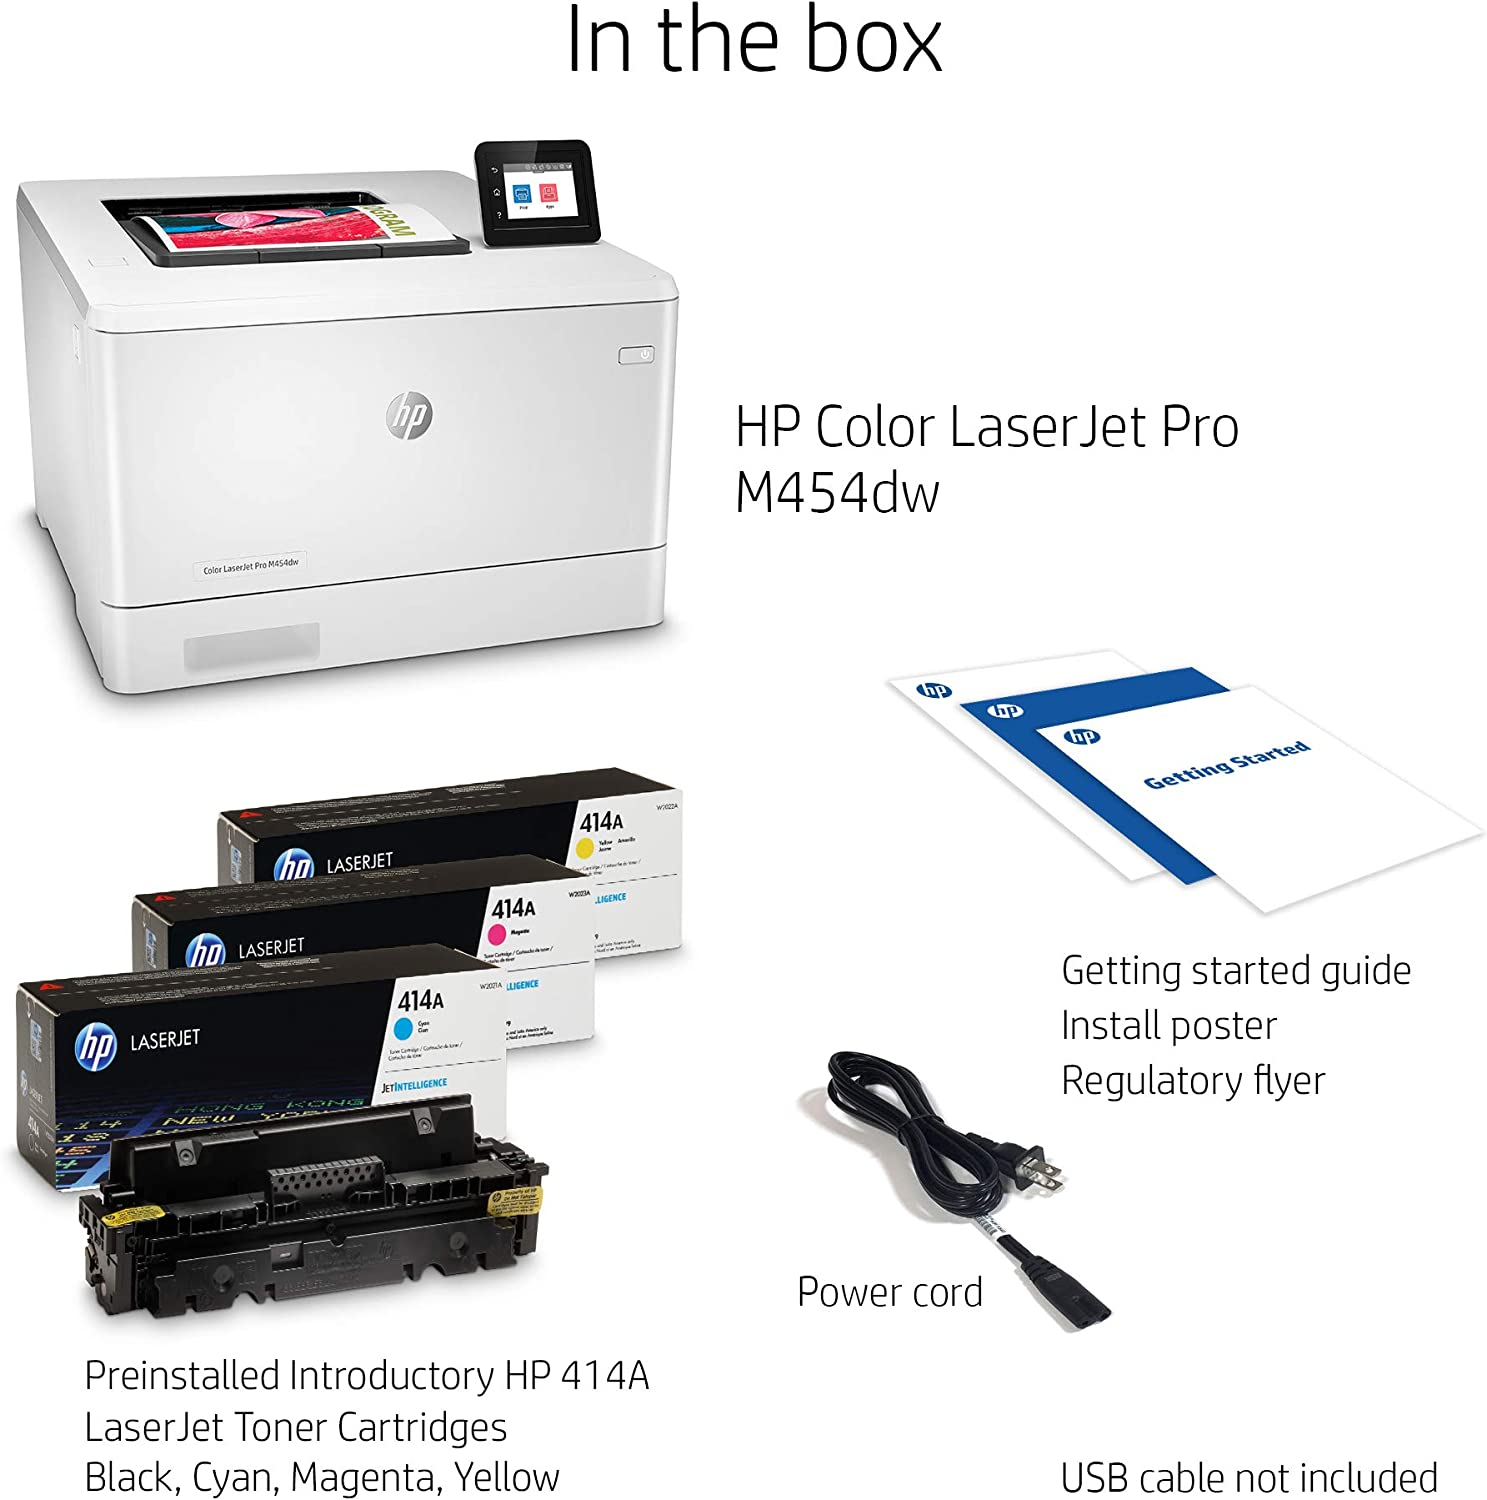 Amazon.com: Impresora HP Color Laserjet Pro M454dn: Electronics